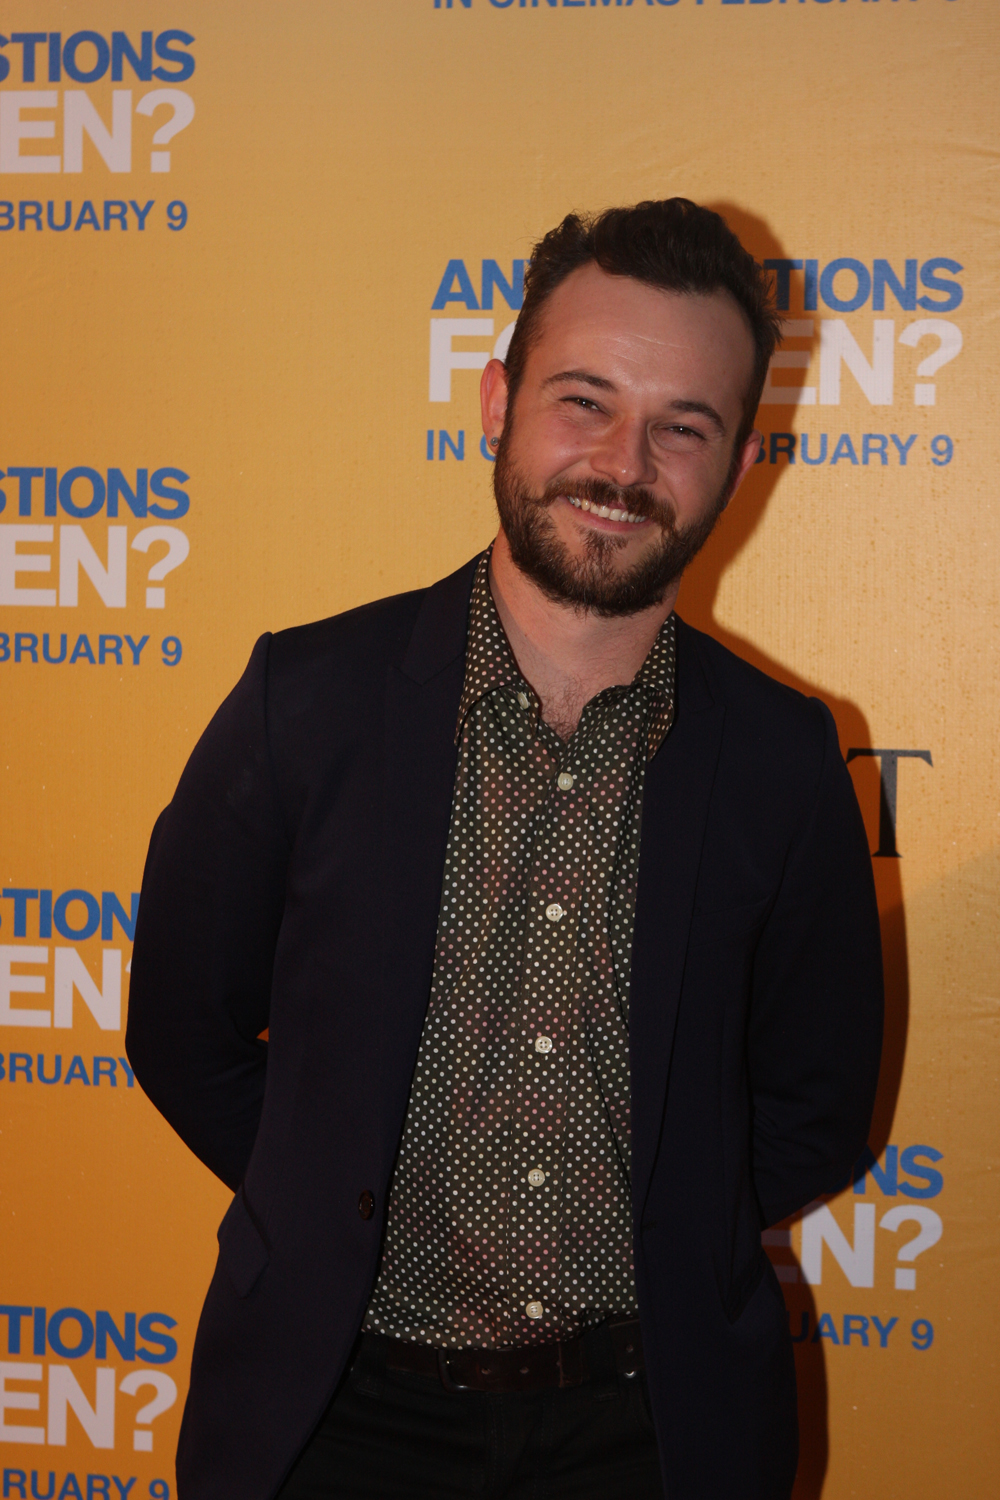 daniel henshall tumblrdaniel henshall height, daniel henshall instagram, daniel henshall babadook, daniel henshall twitter, daniel henshall wife, daniel henshall imdb, daniel henshall turn, daniel henshall actor, daniel henshall wedding, daniel henshall snowtown, daniel henshall movies, daniel henshall tumblr, daniel henshall biography, daniel henshall girlfriend, daniel henshall shirtless, daniel henshall wiki, daniel henshall bio, daniel henshall interview, daniel henshall agent, daniel henshall facebook